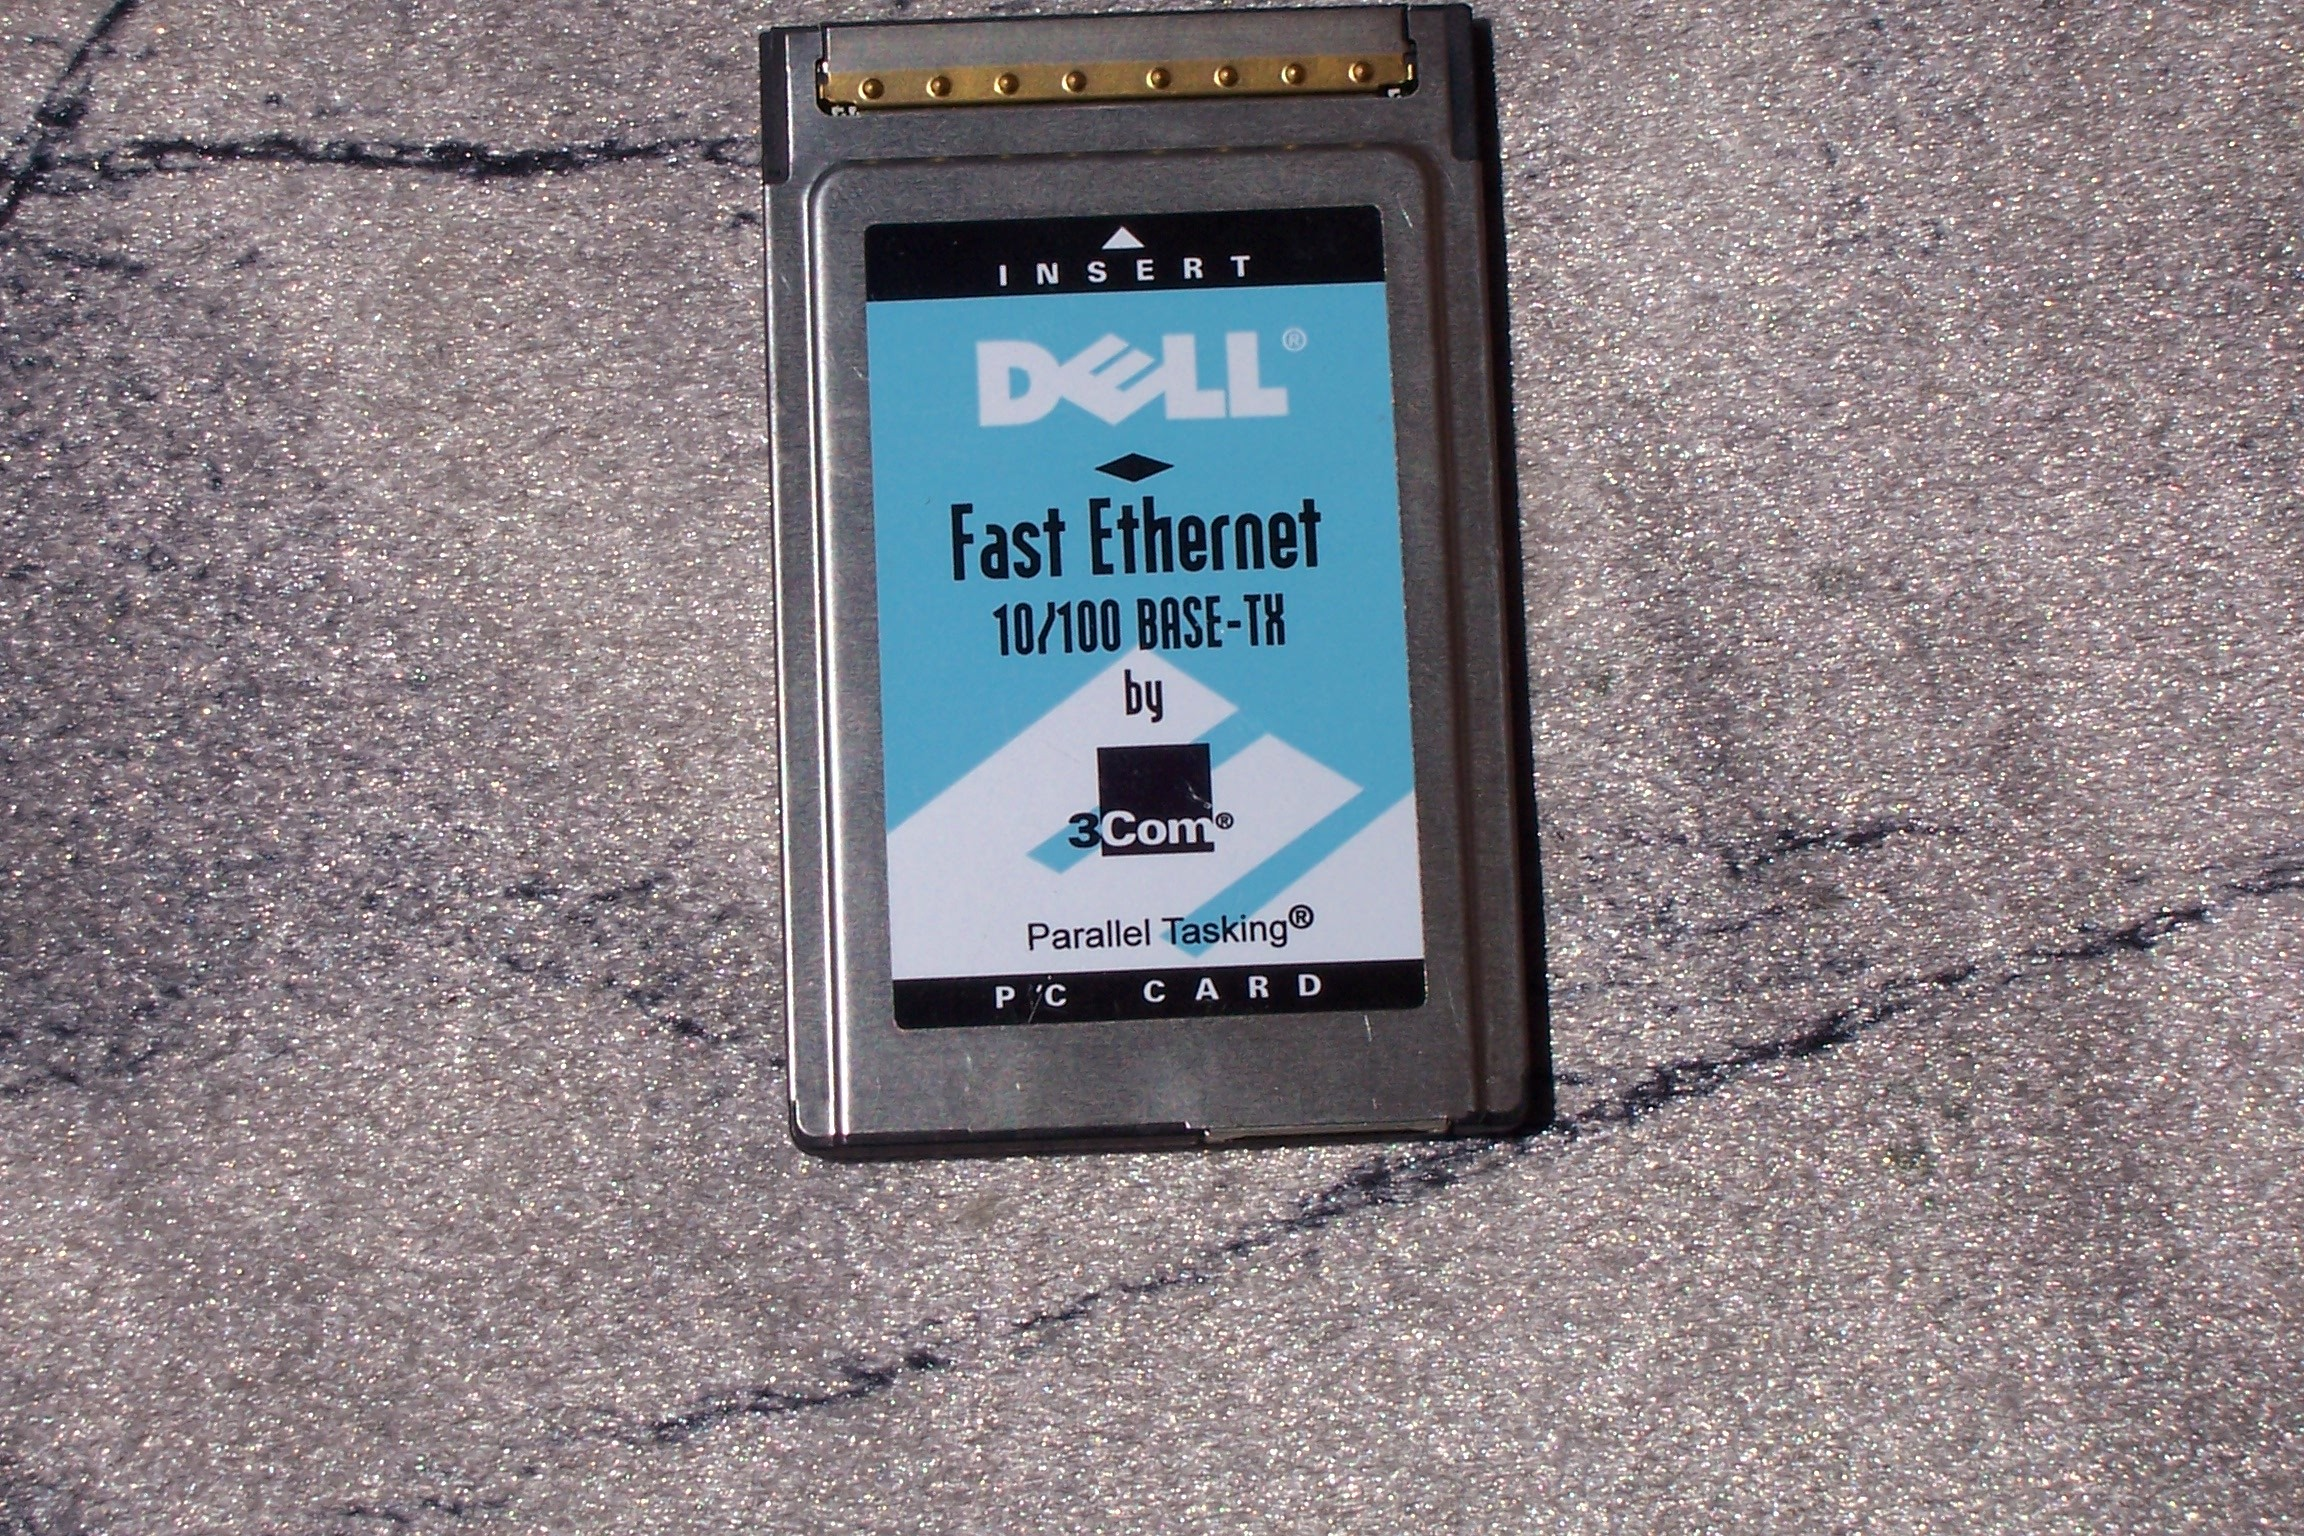 Dell Fast Ethernet 10/100 BASE-TX by 3Com PC Card (3CCFE575CT-D)